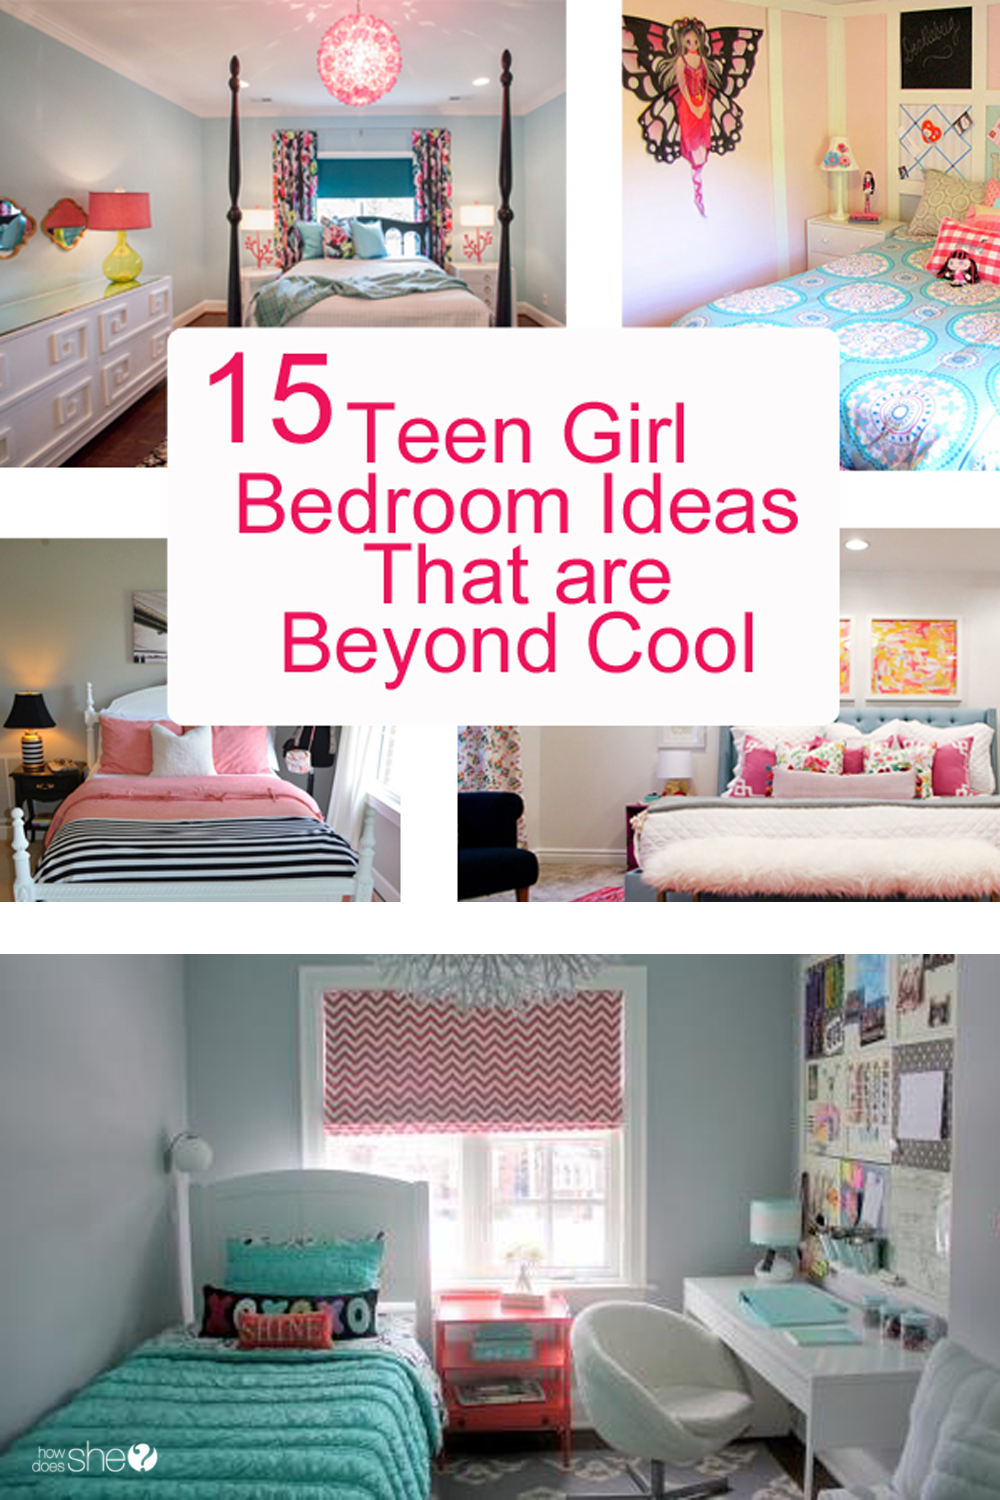 Teen girl bedroom ideas 15 cool diy room ideas for - Cool stuff for girls rooms ...